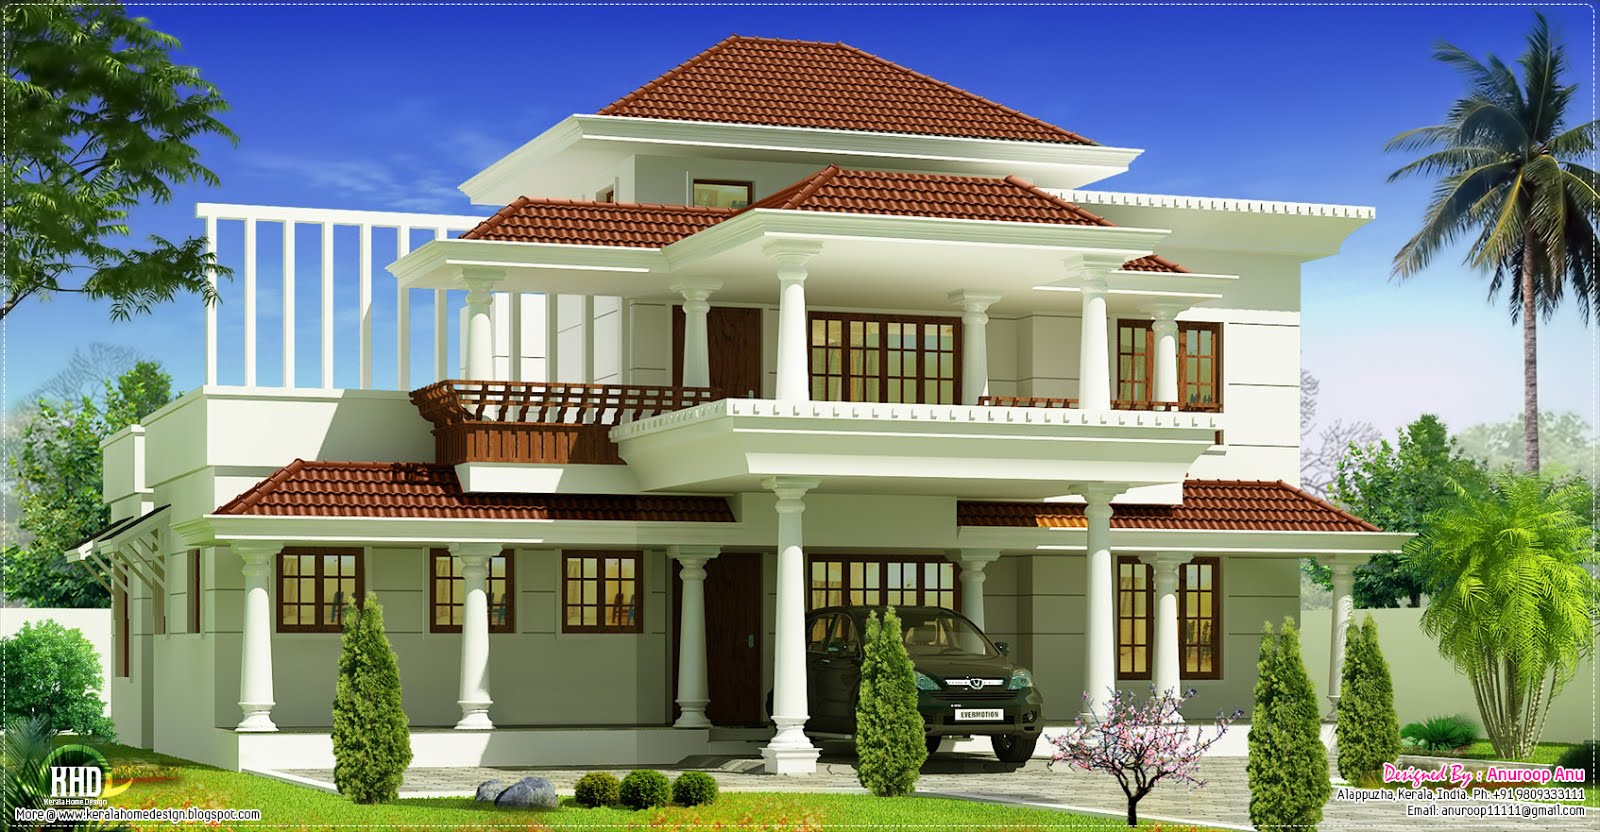 Kerala house models houses plans designs for Housing plans kerala